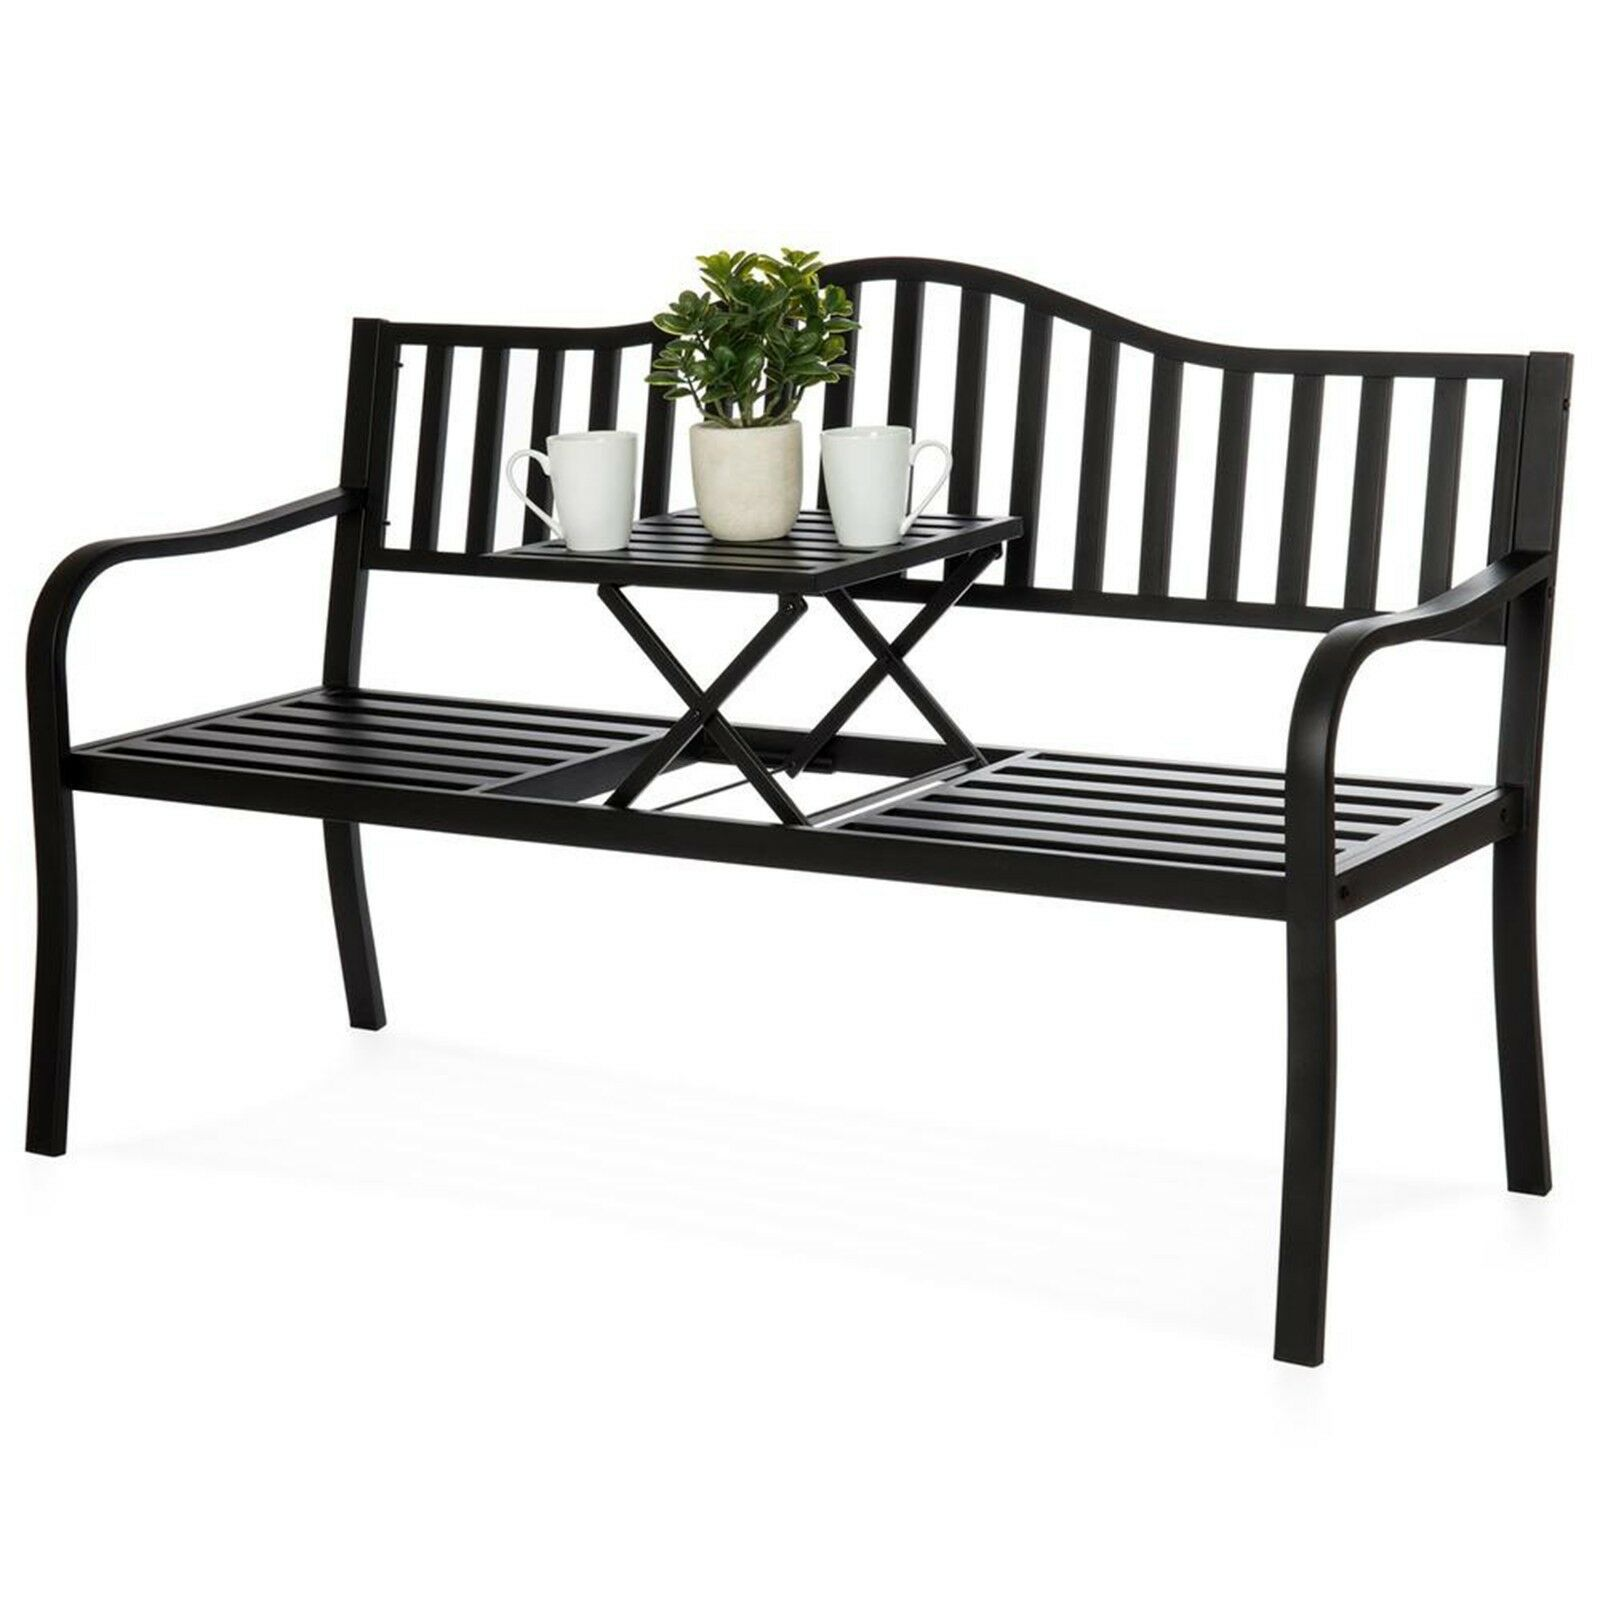 Picture of: Metal Garden Bench Cast Iron Patio Furniture Porch Seat Adjustable Table Steel 718569027351 Ebay